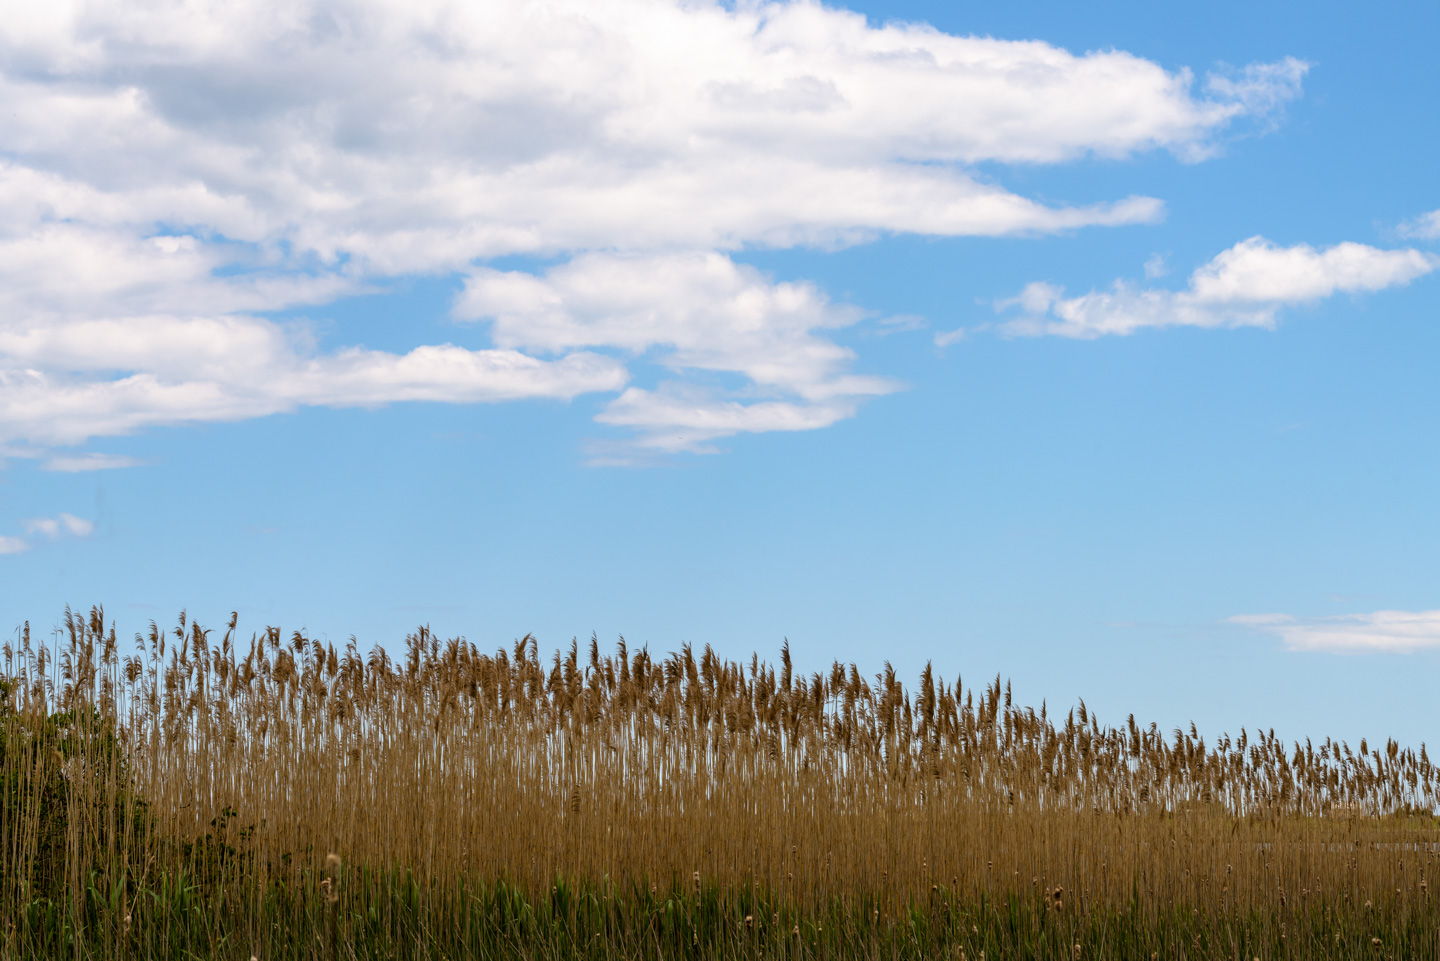 Tall marsh grasses with clouds